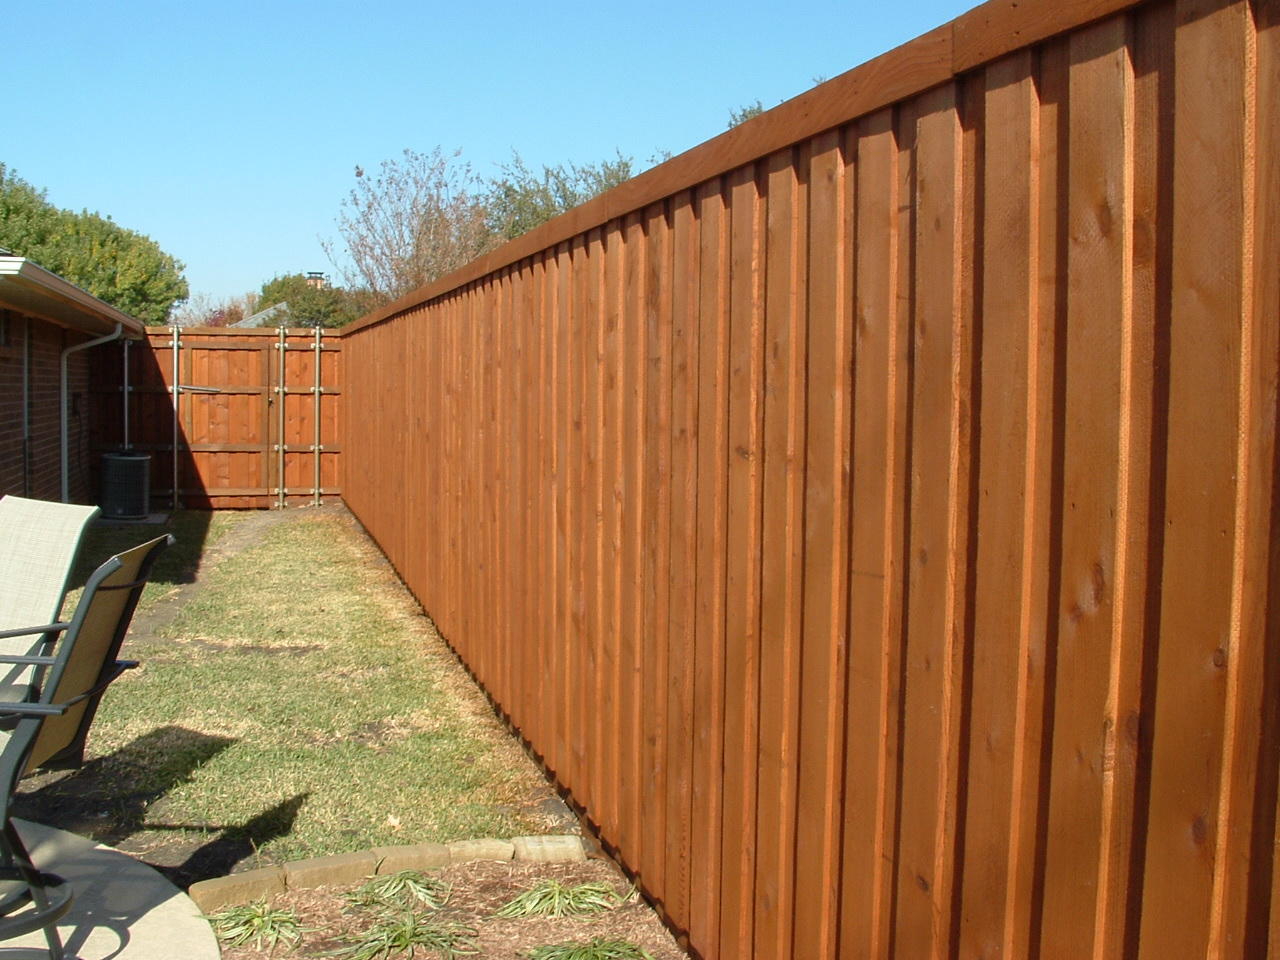 Sun f fence - How to paint a wood fence ...